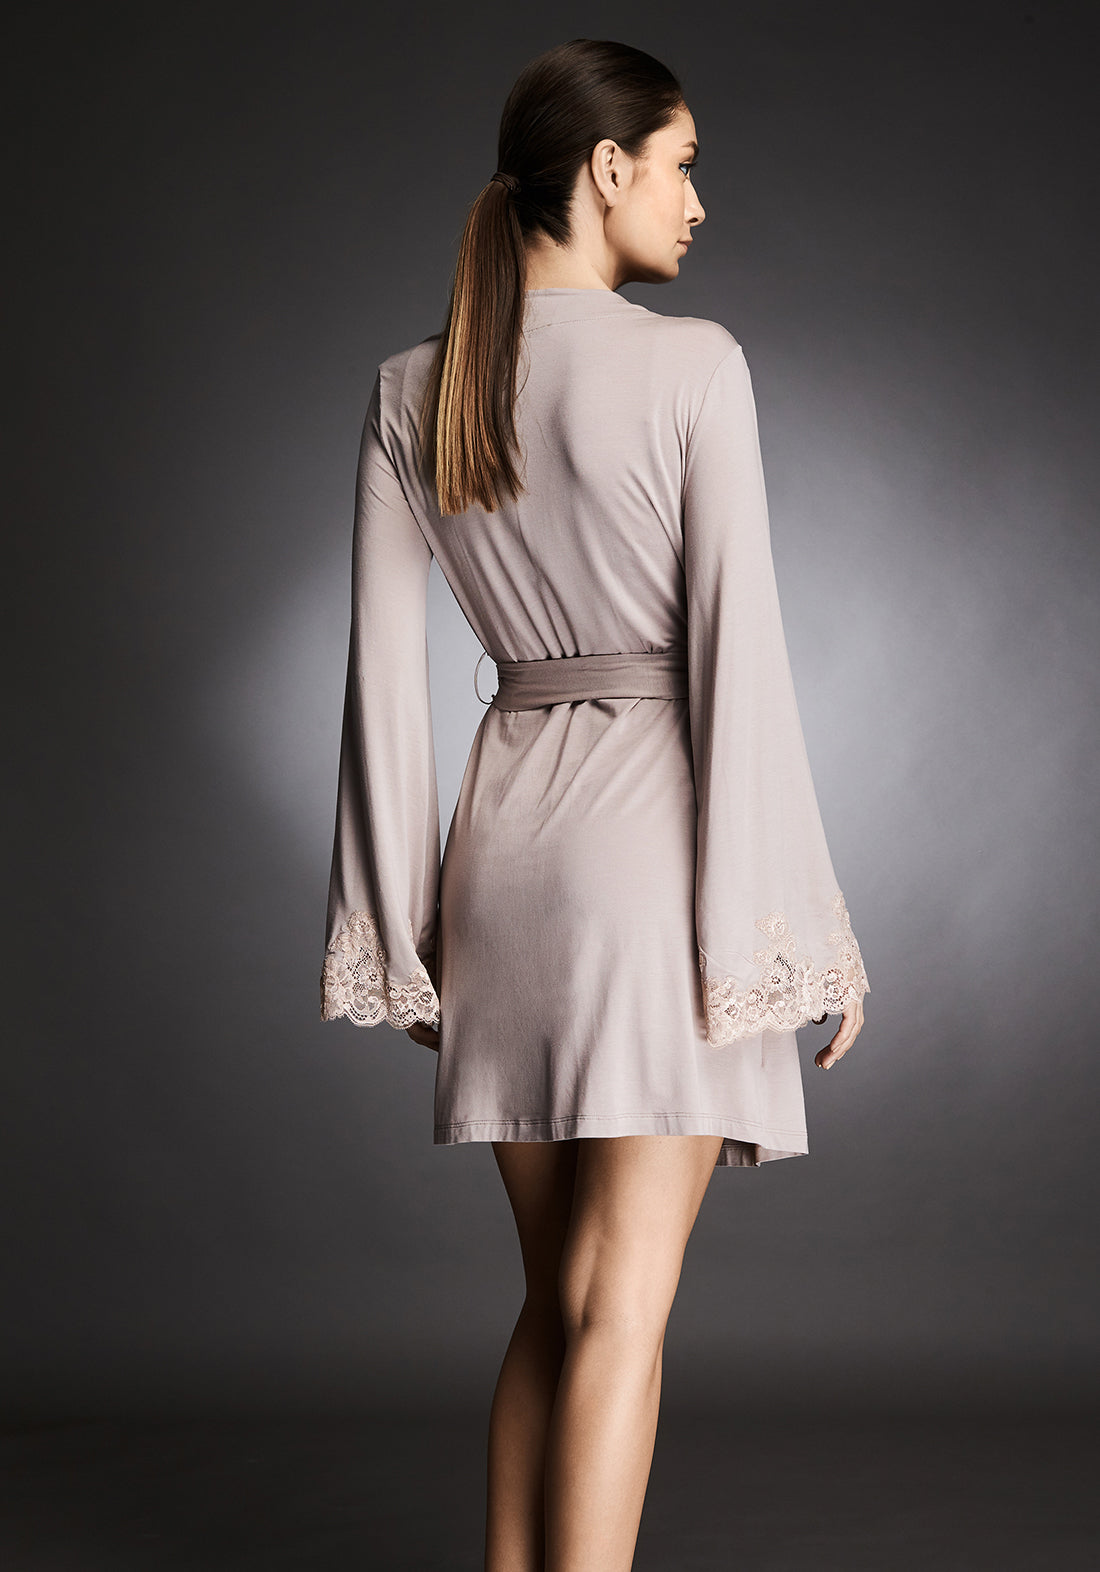 Isolde Mini Robe in Almond Nude - I.D. Sarrieri